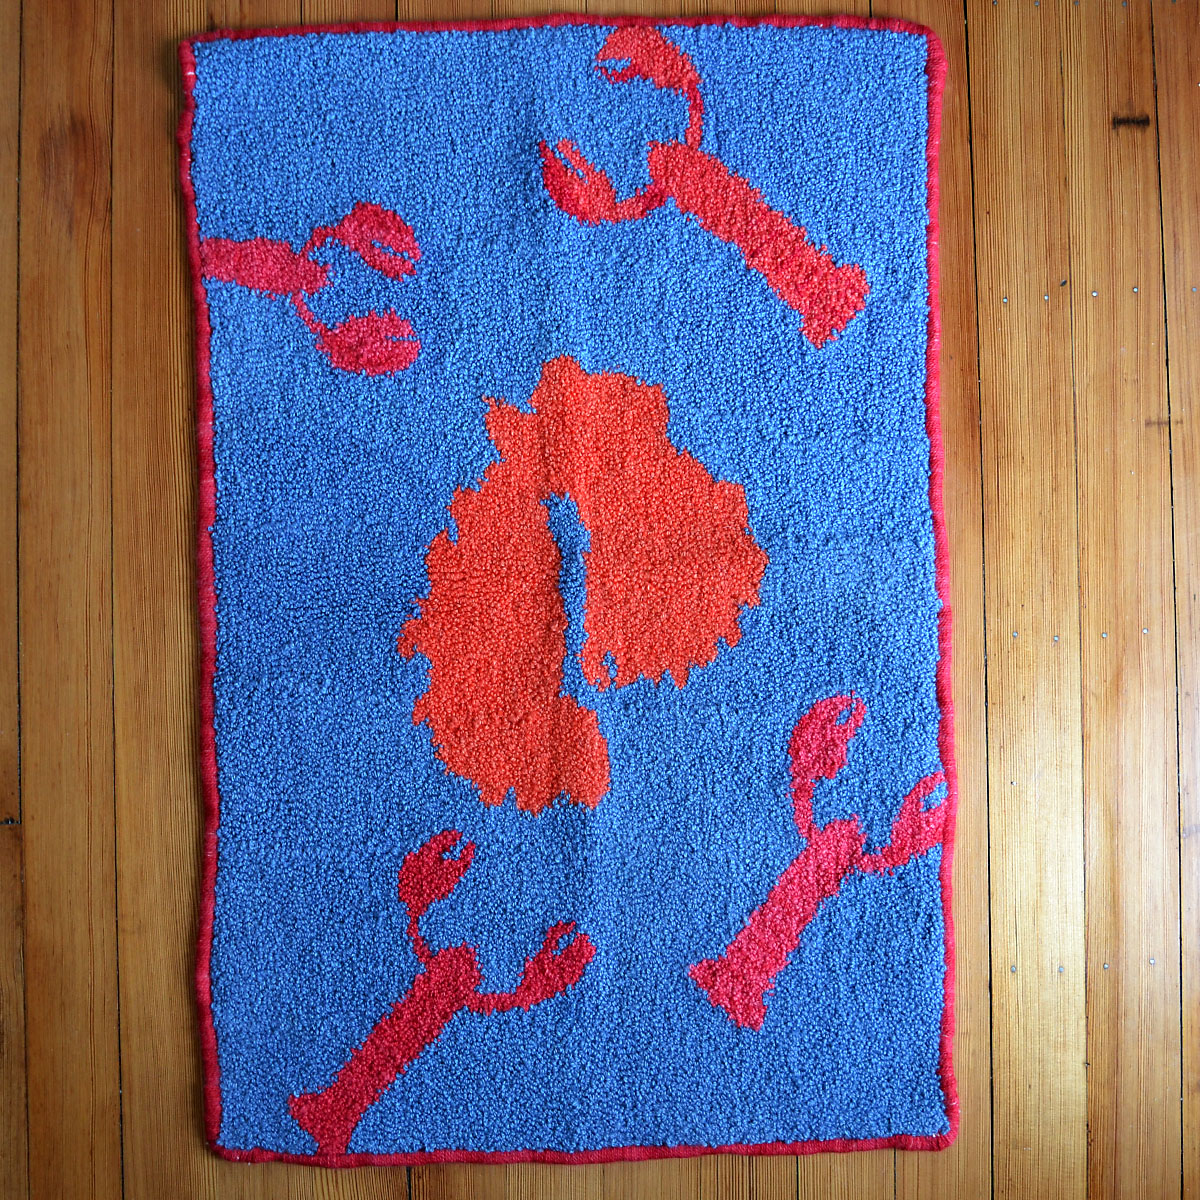 Hand Hooked MDI Rug - Neighborhood House Board member, Nancy Schafer is a woman of many talents… including hooking rugs. This one of a kind hand hooked rug will brighten up any room with a colorful and fun design featuring the island we call home along with iconic Maine lobsters. Snap this up before it's gone! You can view more of Nancy's work here.